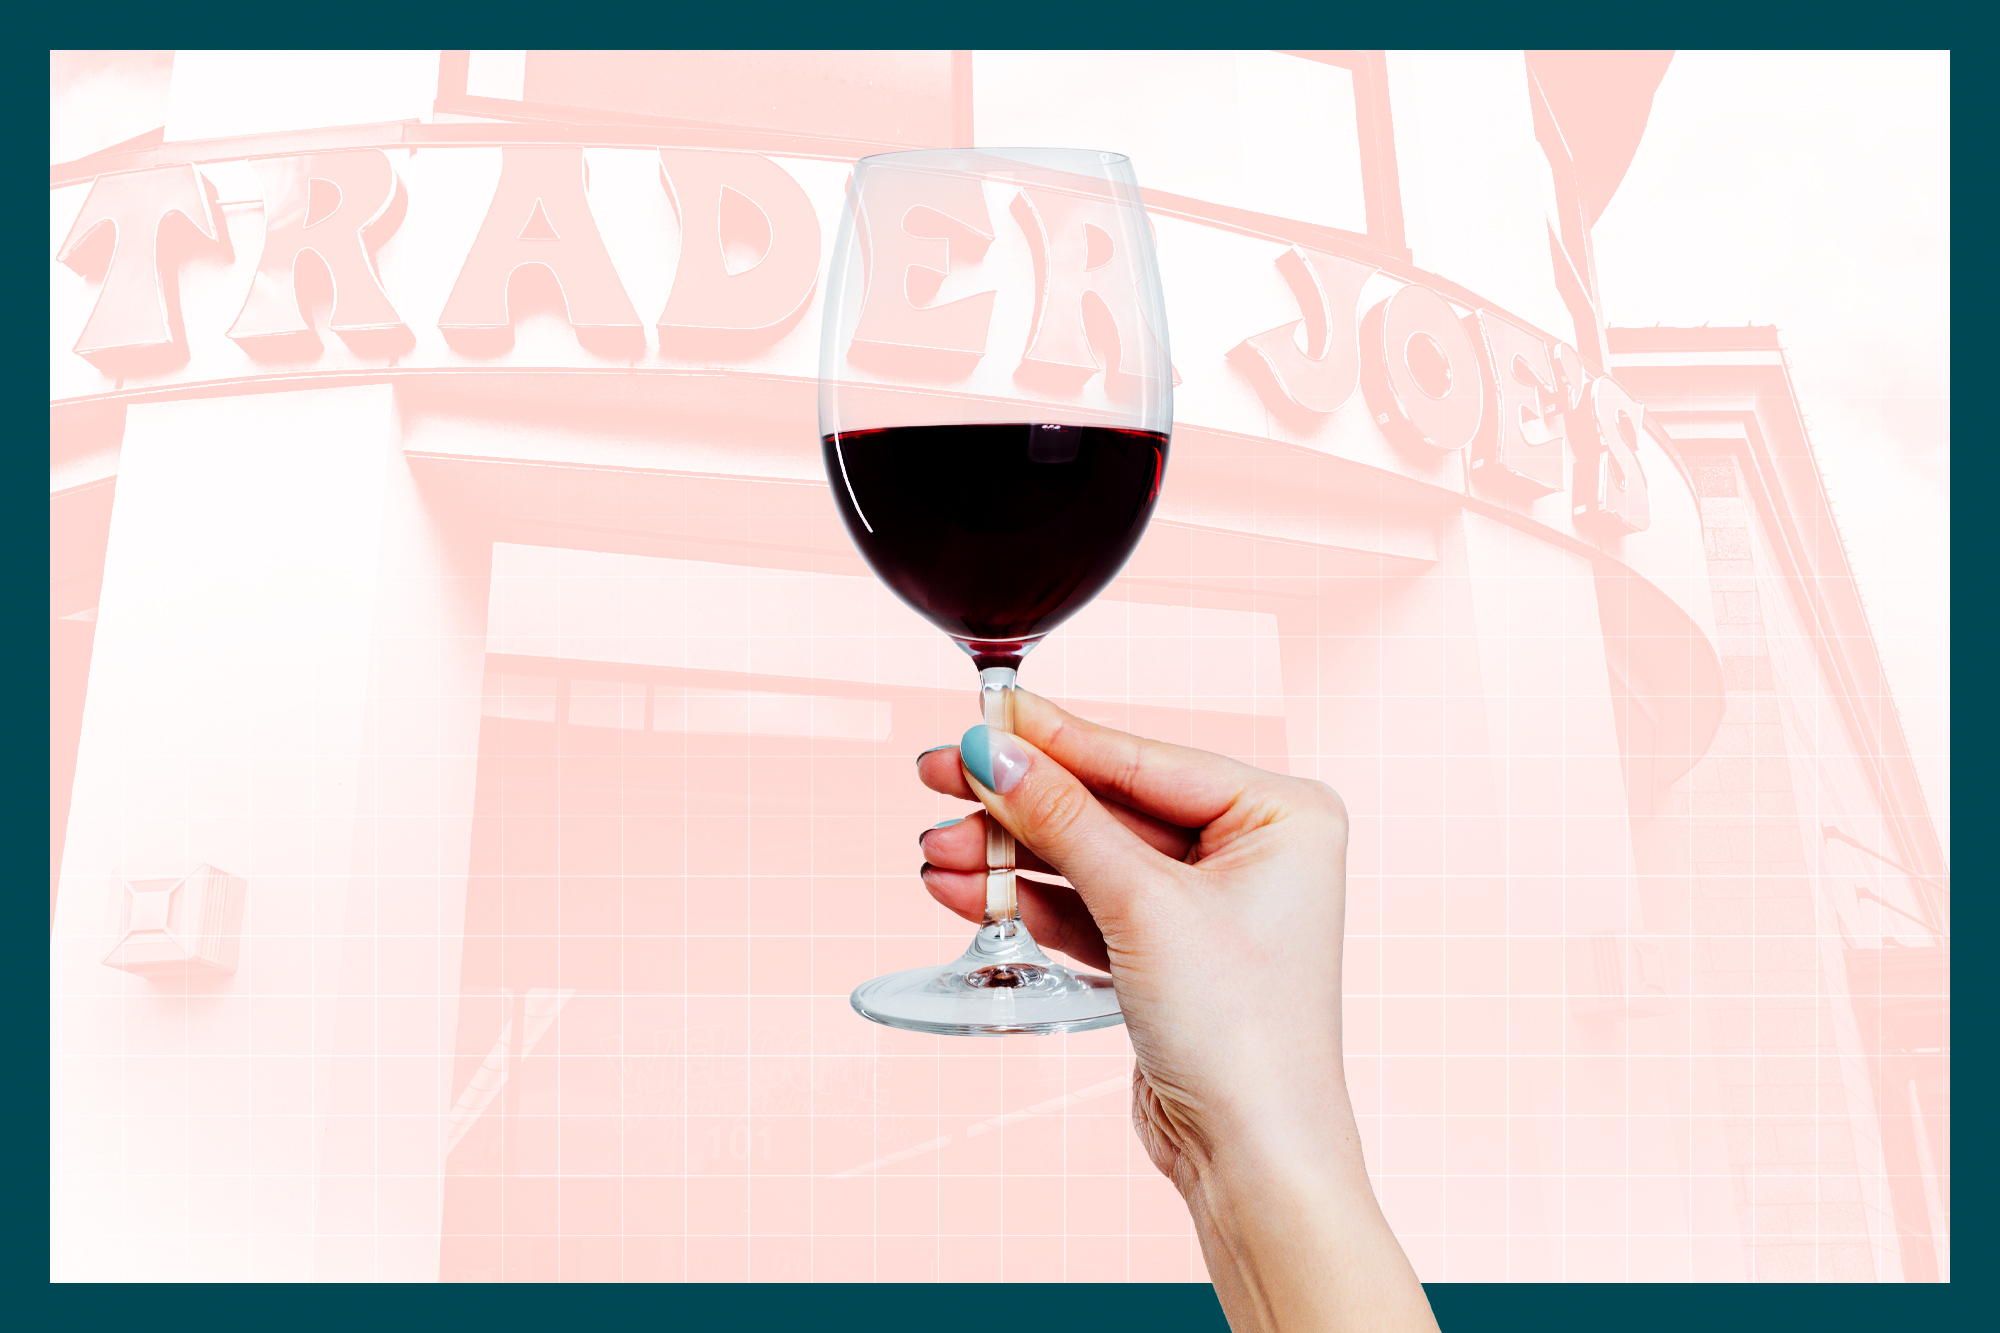 A woman holding a glass of wine in front of a Trader Joe's storefront